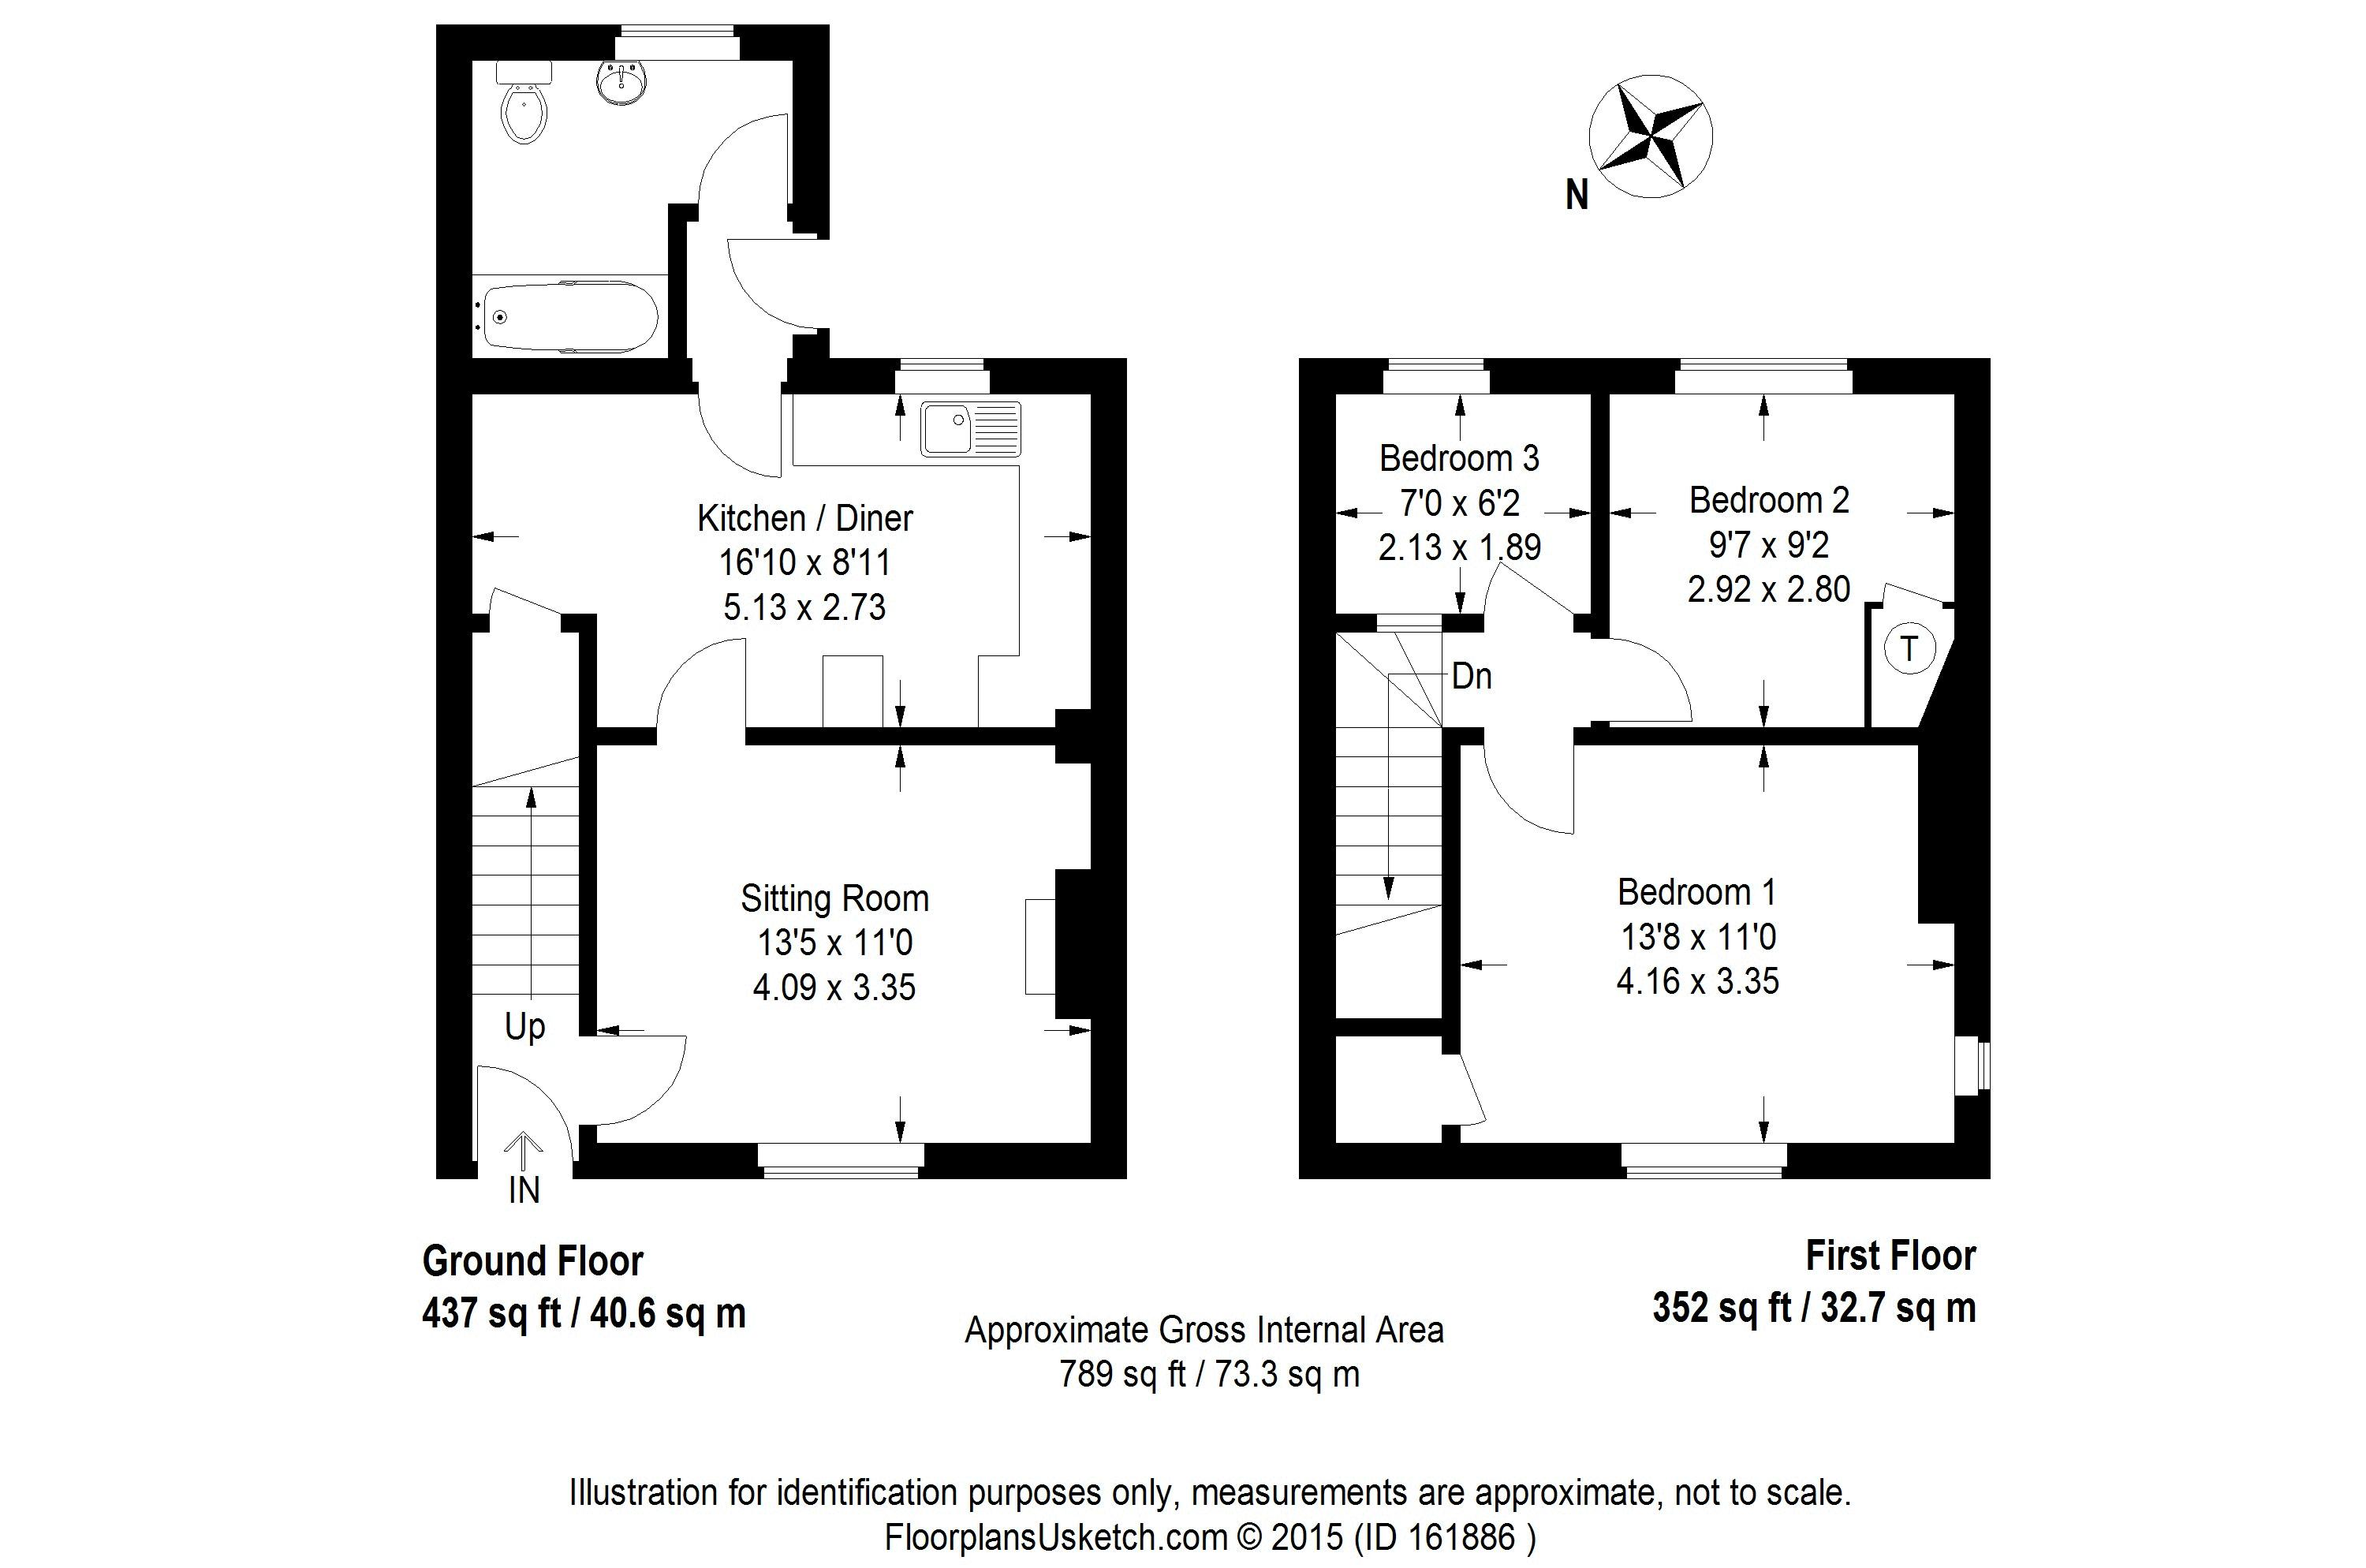 Property for sale in tanners lane haslemere for 16 brookers lane floor plans